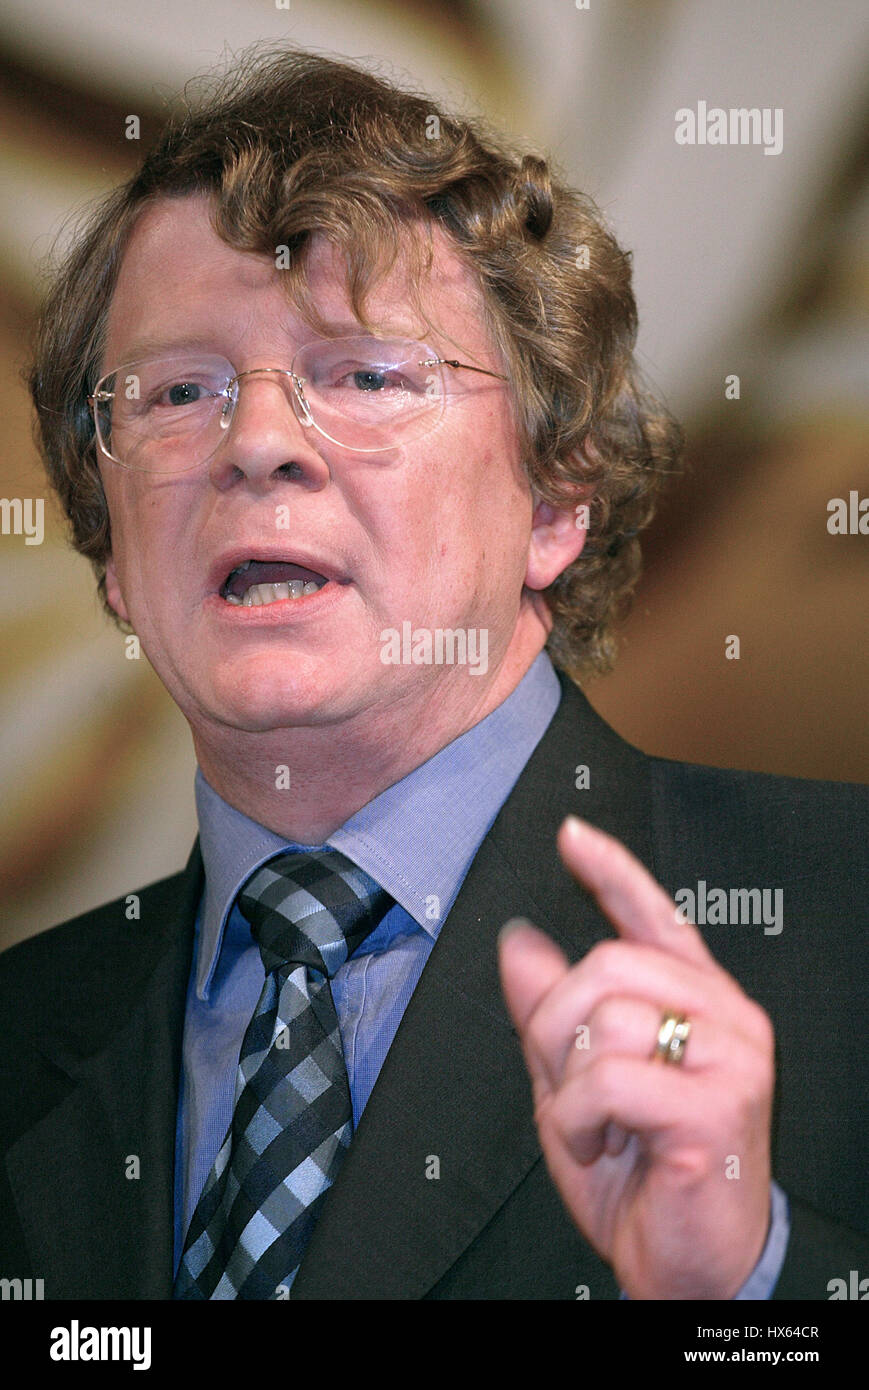 RICHARD YOUNGER ROSS MP LIBERAL DEMOCRAT PARTY 25 September 2003 BRIGHTON ENGLAND - Stock Image